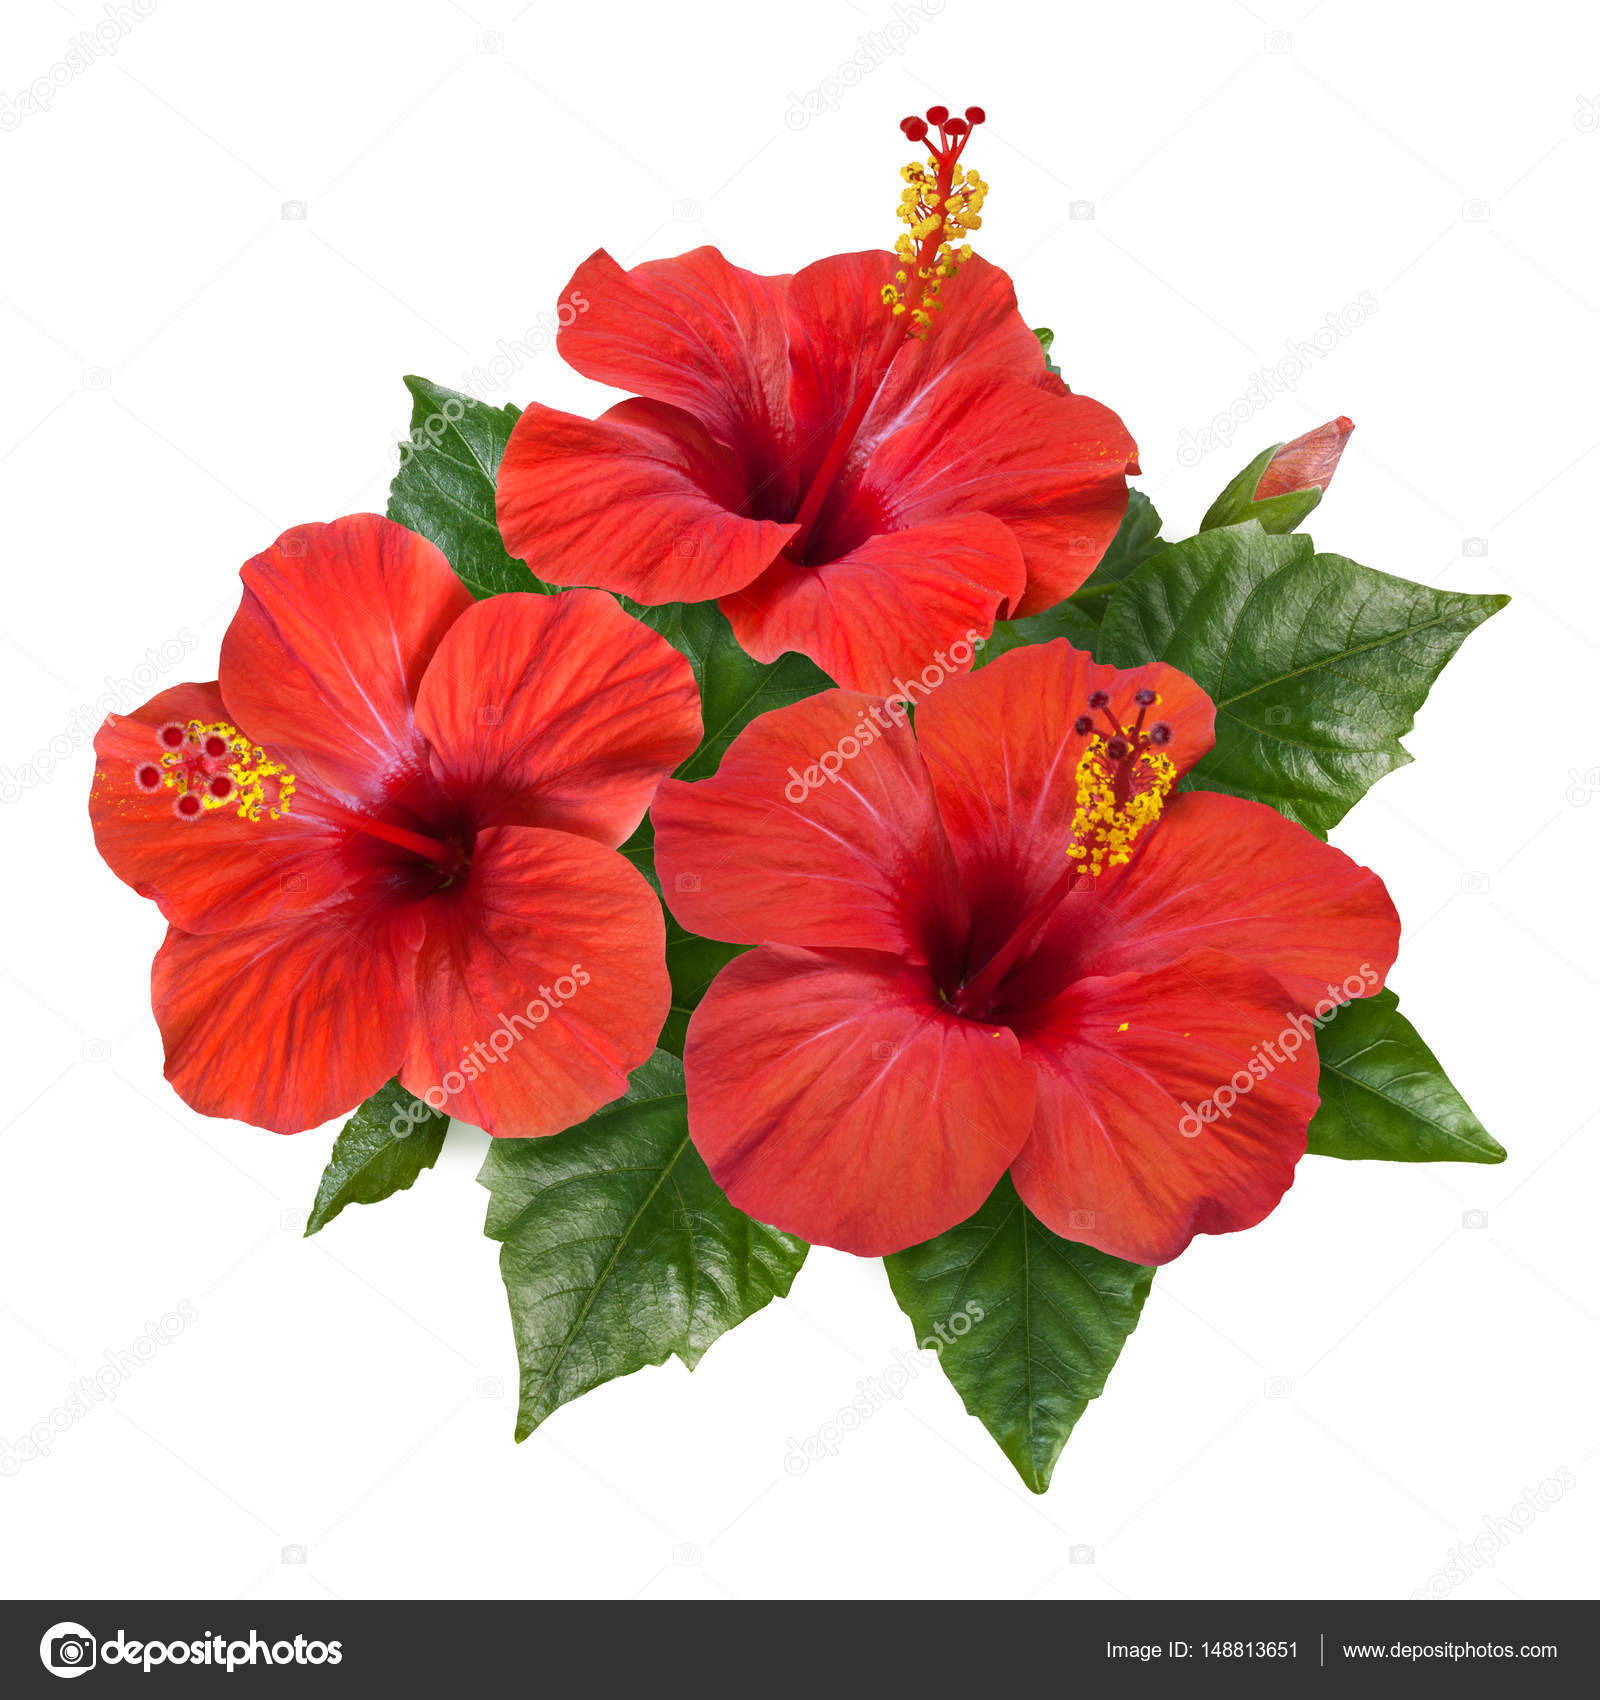 Red hibiscus flowers leaves and buds stock photo tkorop 148813651 bright large flowers and buds of red hibiscus isolated photo by tkorop izmirmasajfo